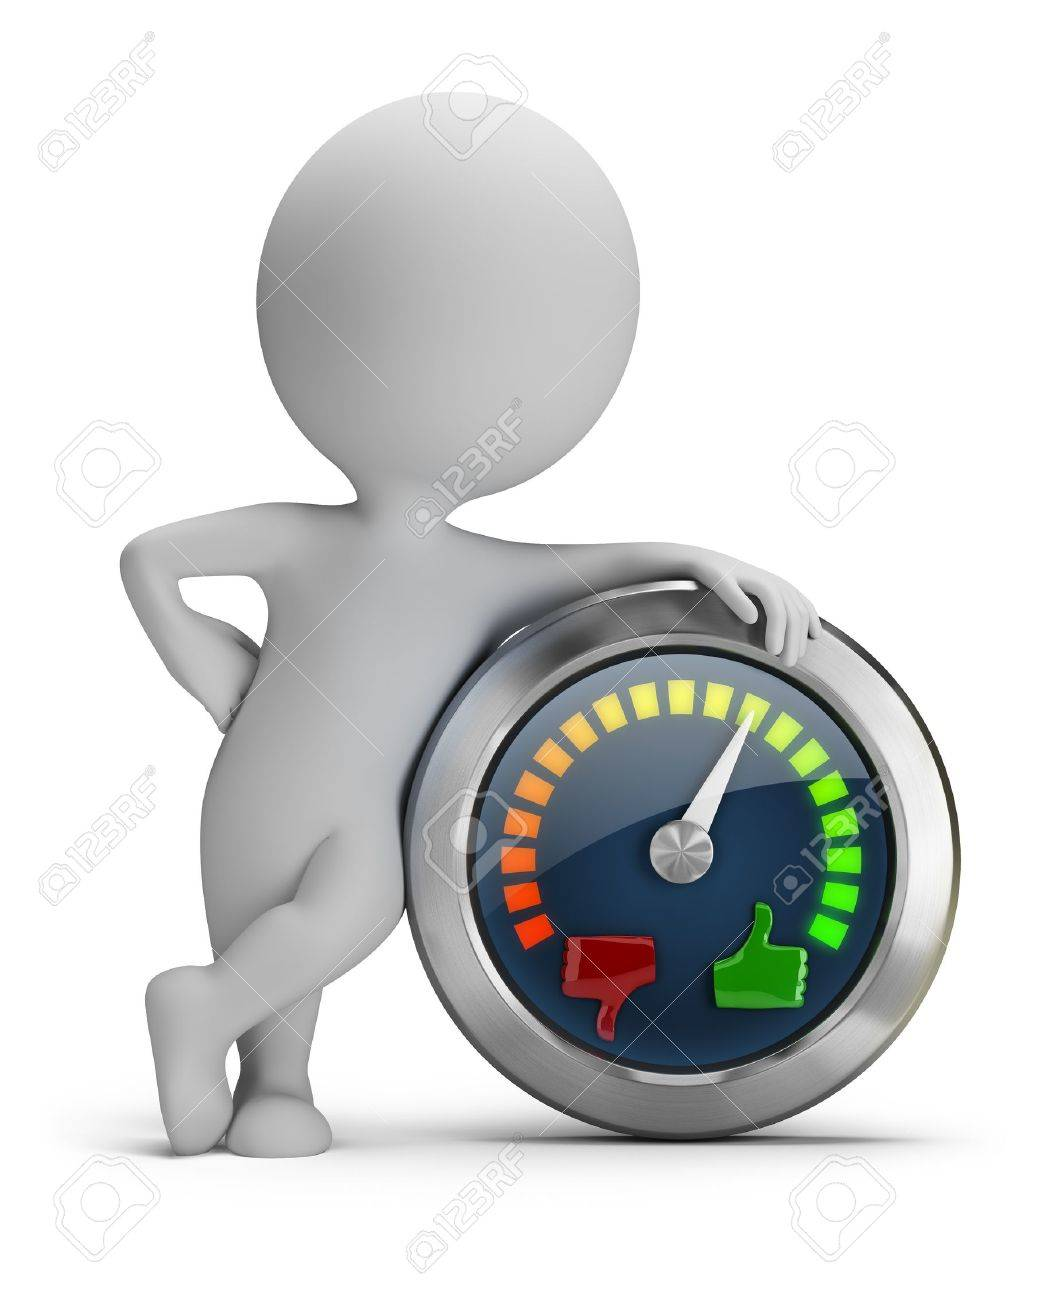 Mood Bilder 3d small with mood meter 3d image isolated white background